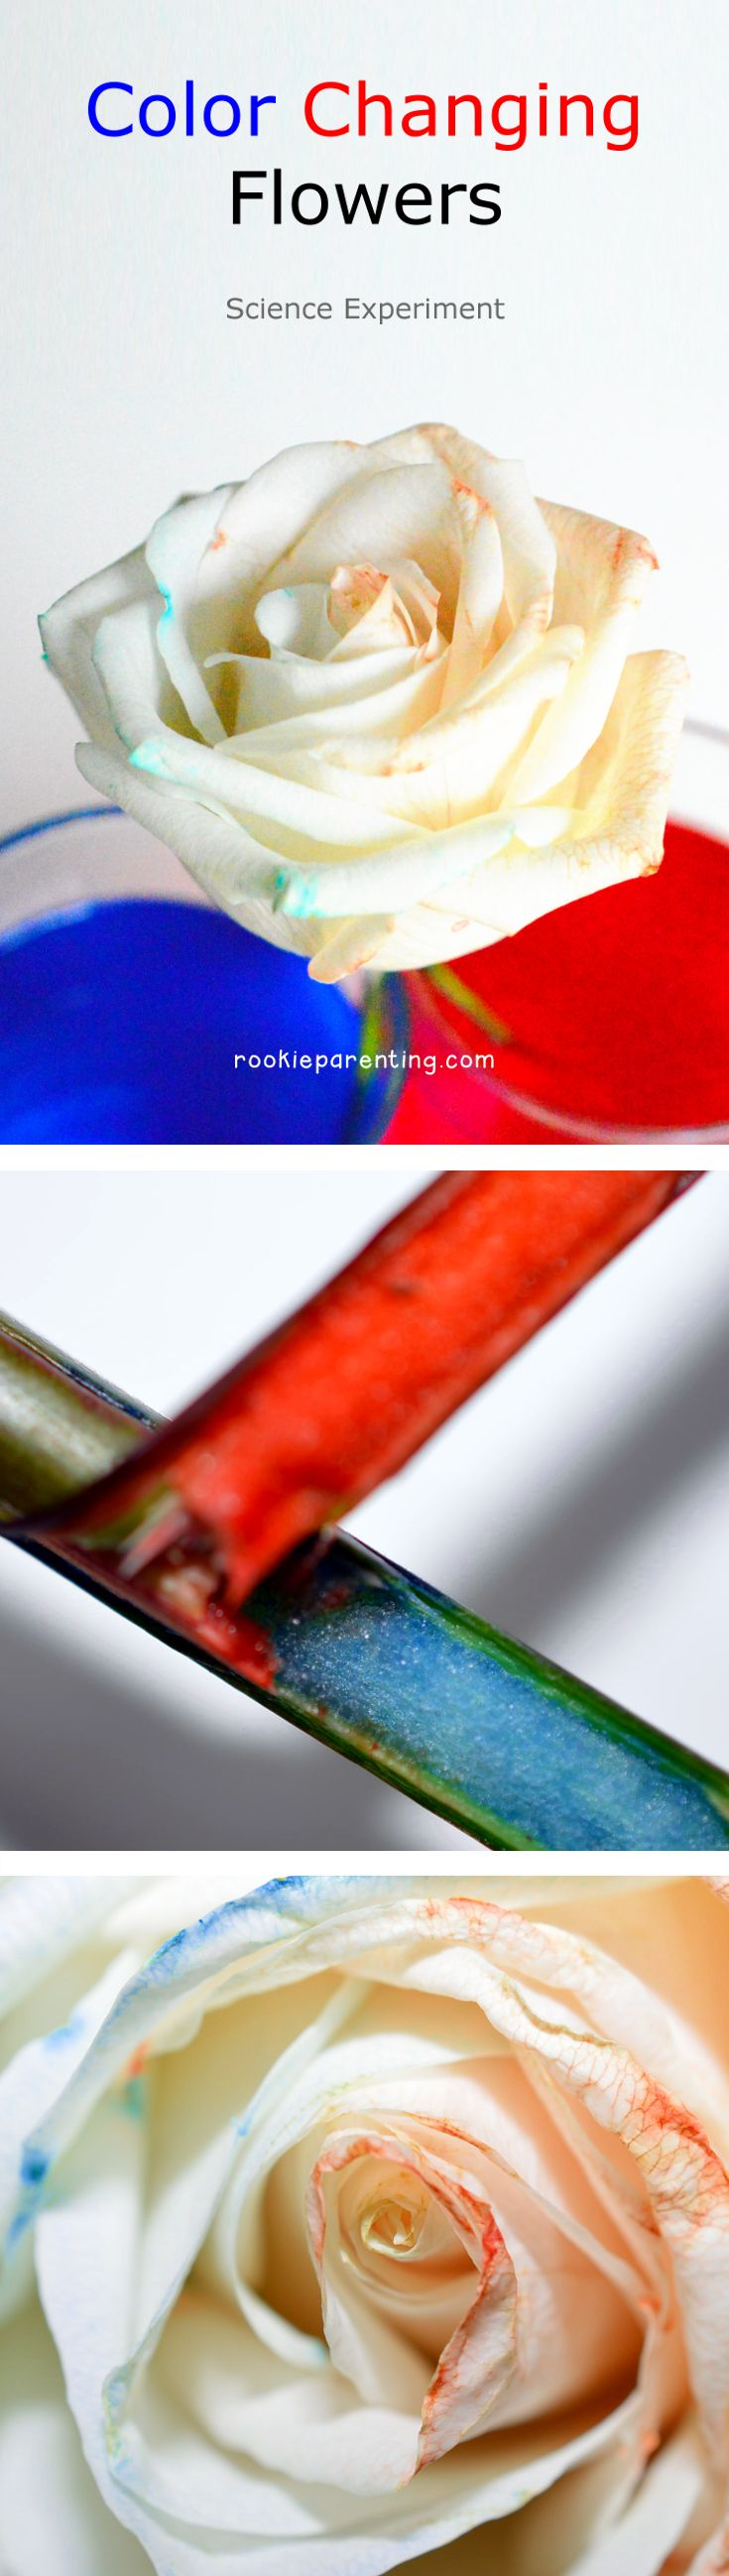 Color Changing Flowers Science Project | Pinterest | Change, Flowers ...